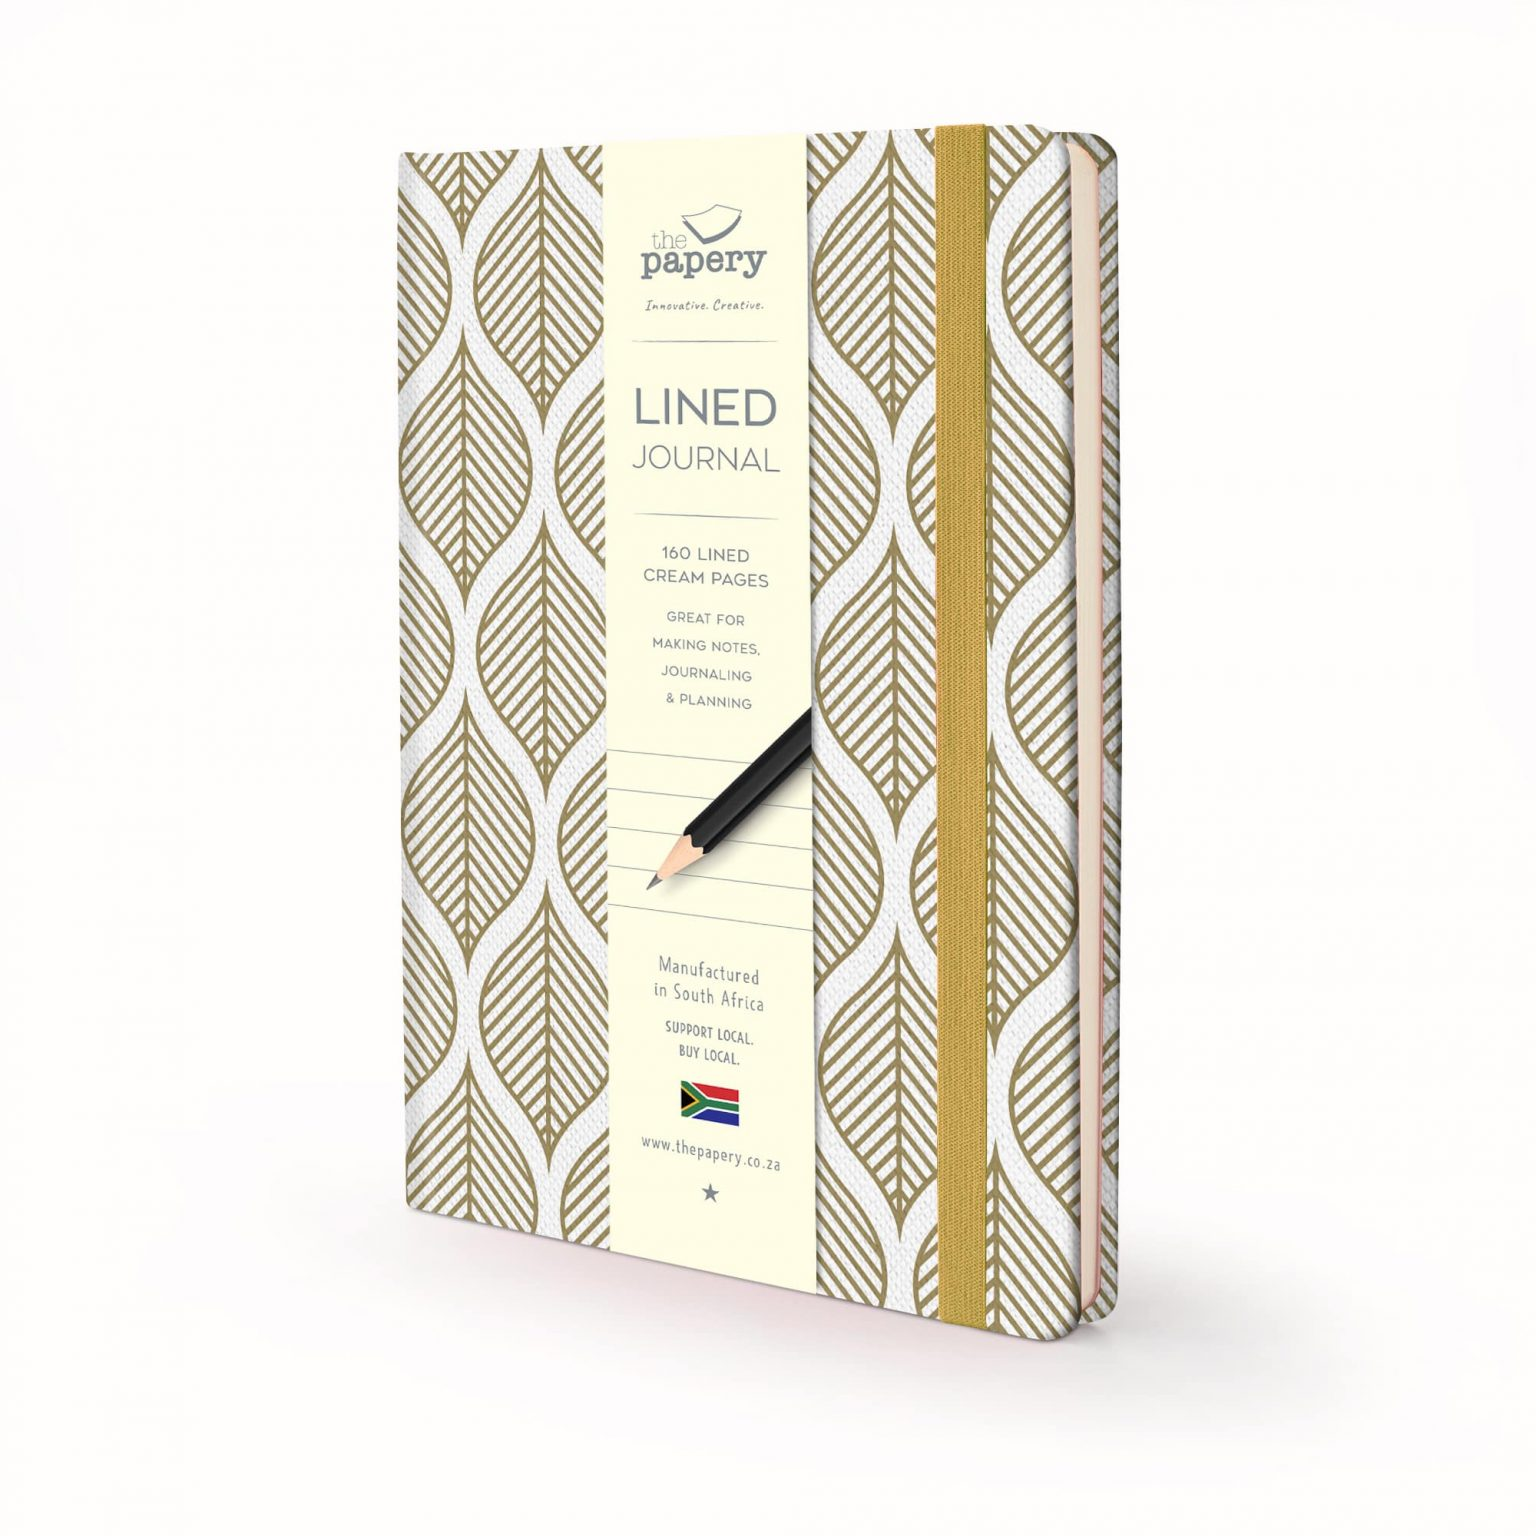 Image shows a Nature Geometric Leaves Hardcover journal